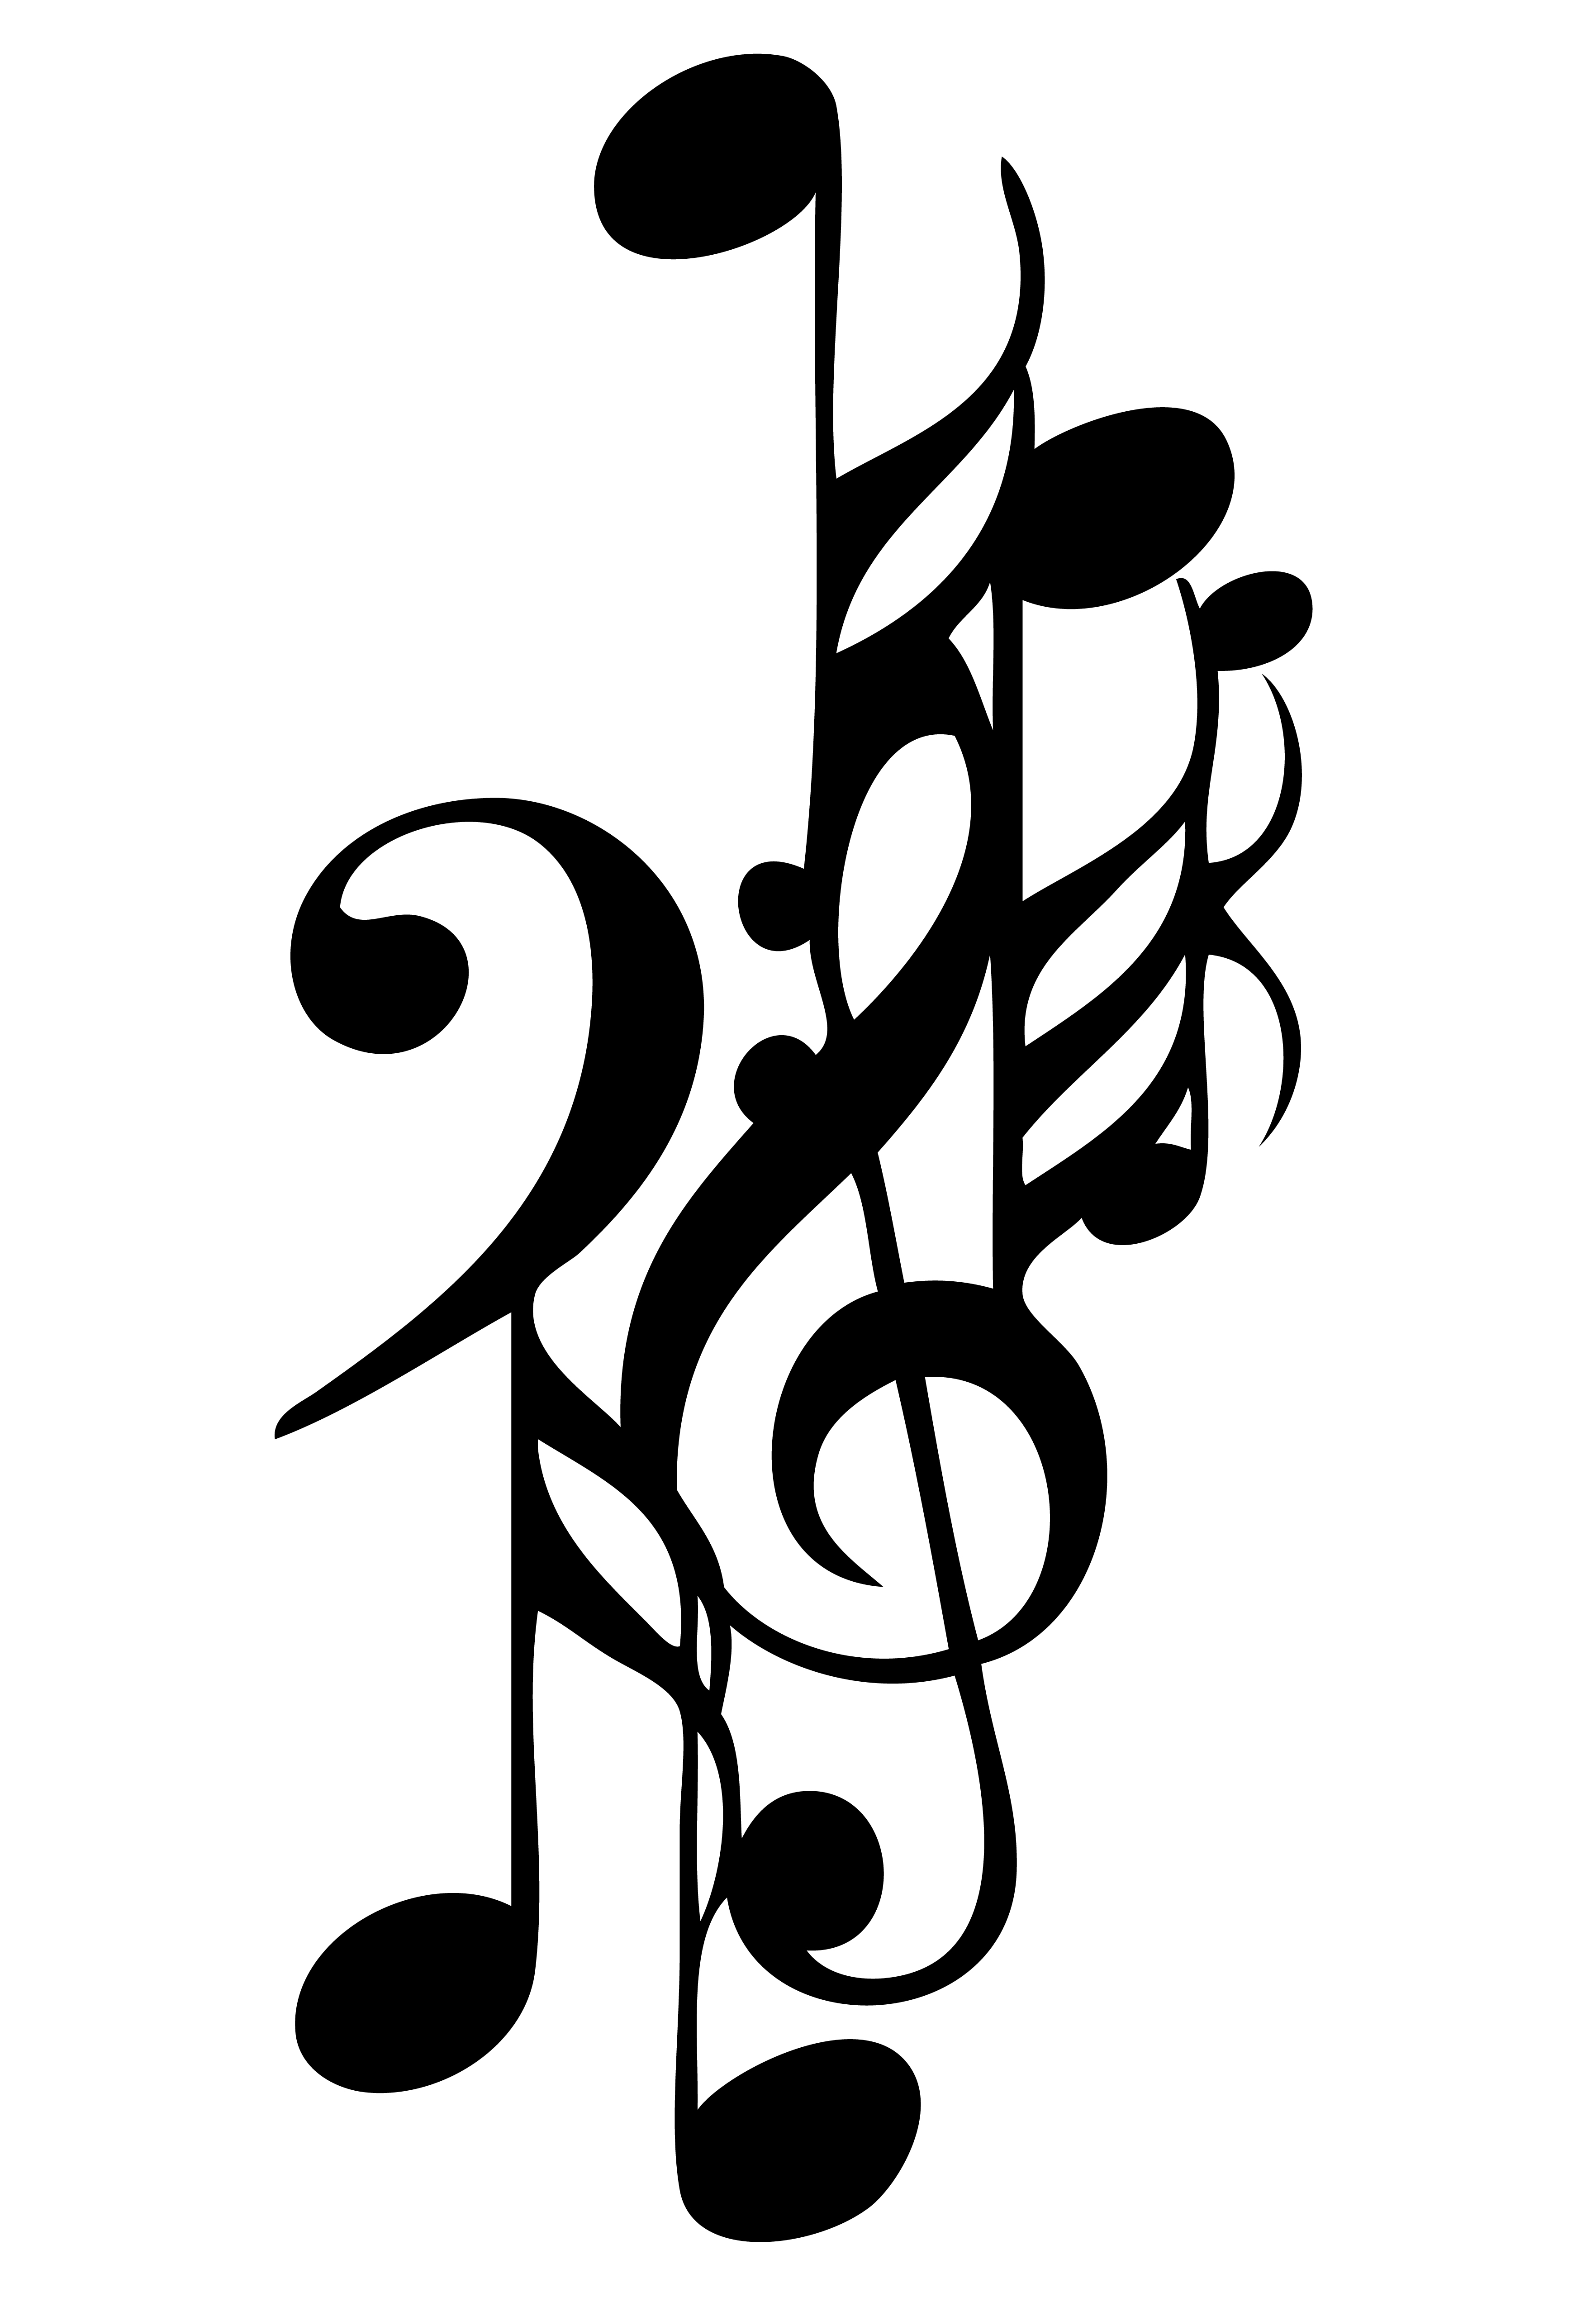 Cool Music Notes Drawings